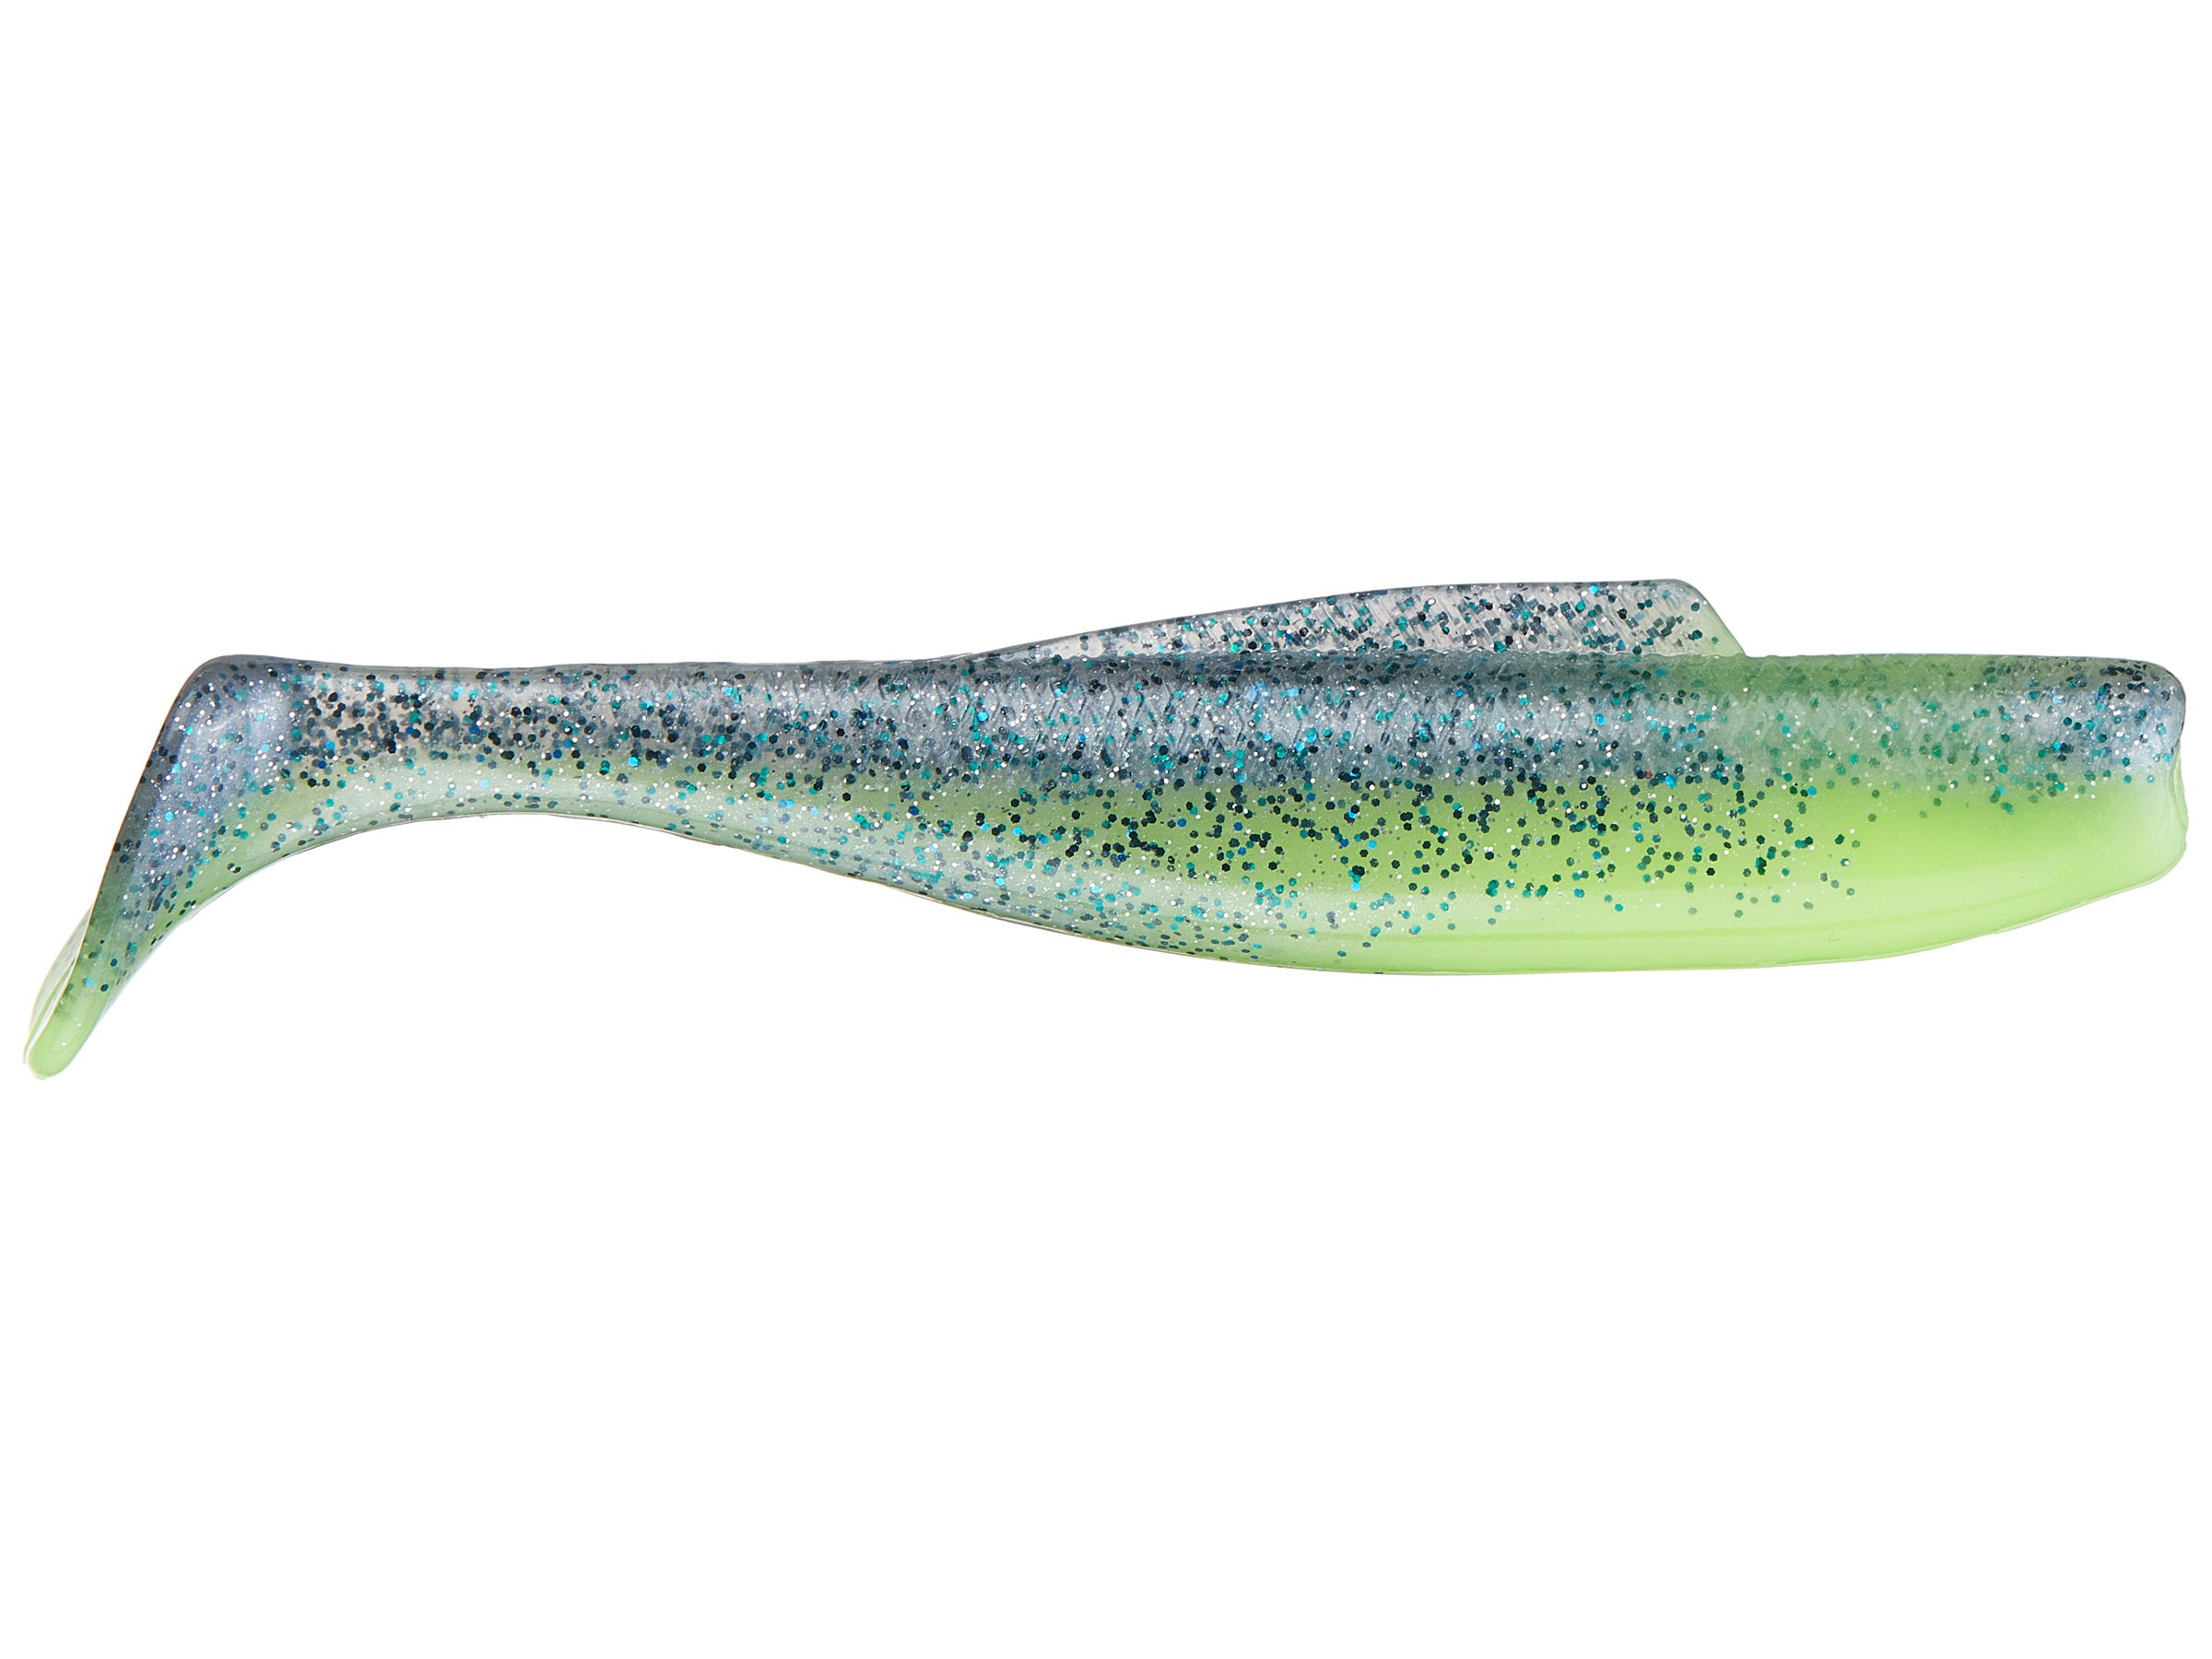 Z Man Diezel Minnowz Swimbait 5pk Tackle Warehouse